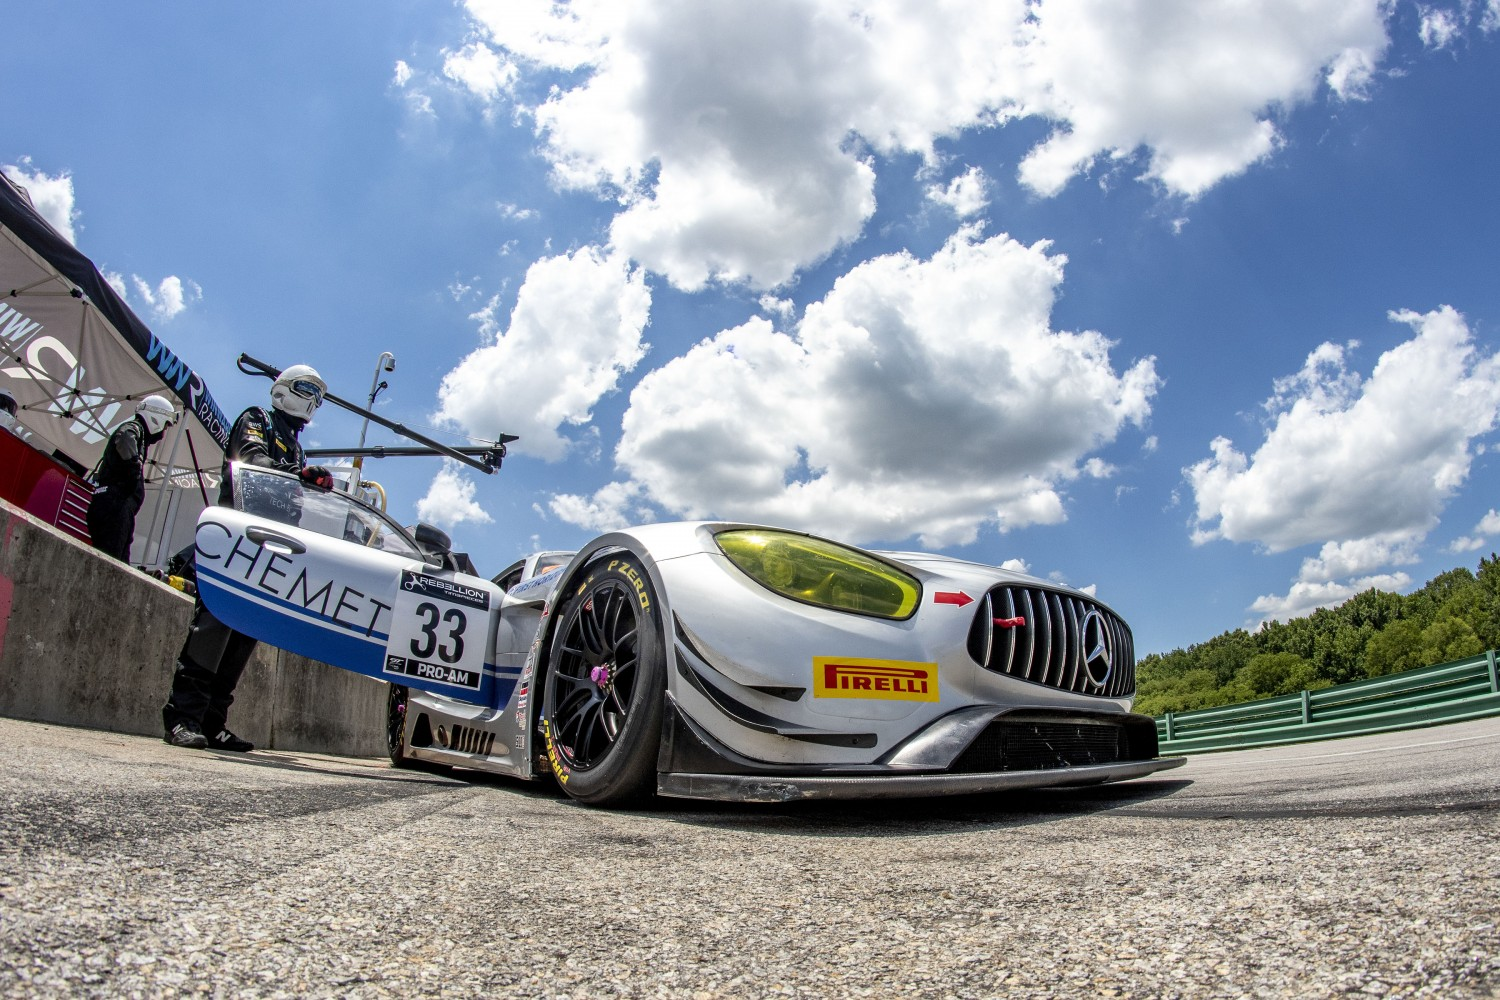 #33 GT3 Pro-Am, Winward Racing, Kris Wilson, Russell Ward, Mercedes-AMG GT3\, 2020 SRO Motorsports Group - VIRginia International Raceway, Alton VA